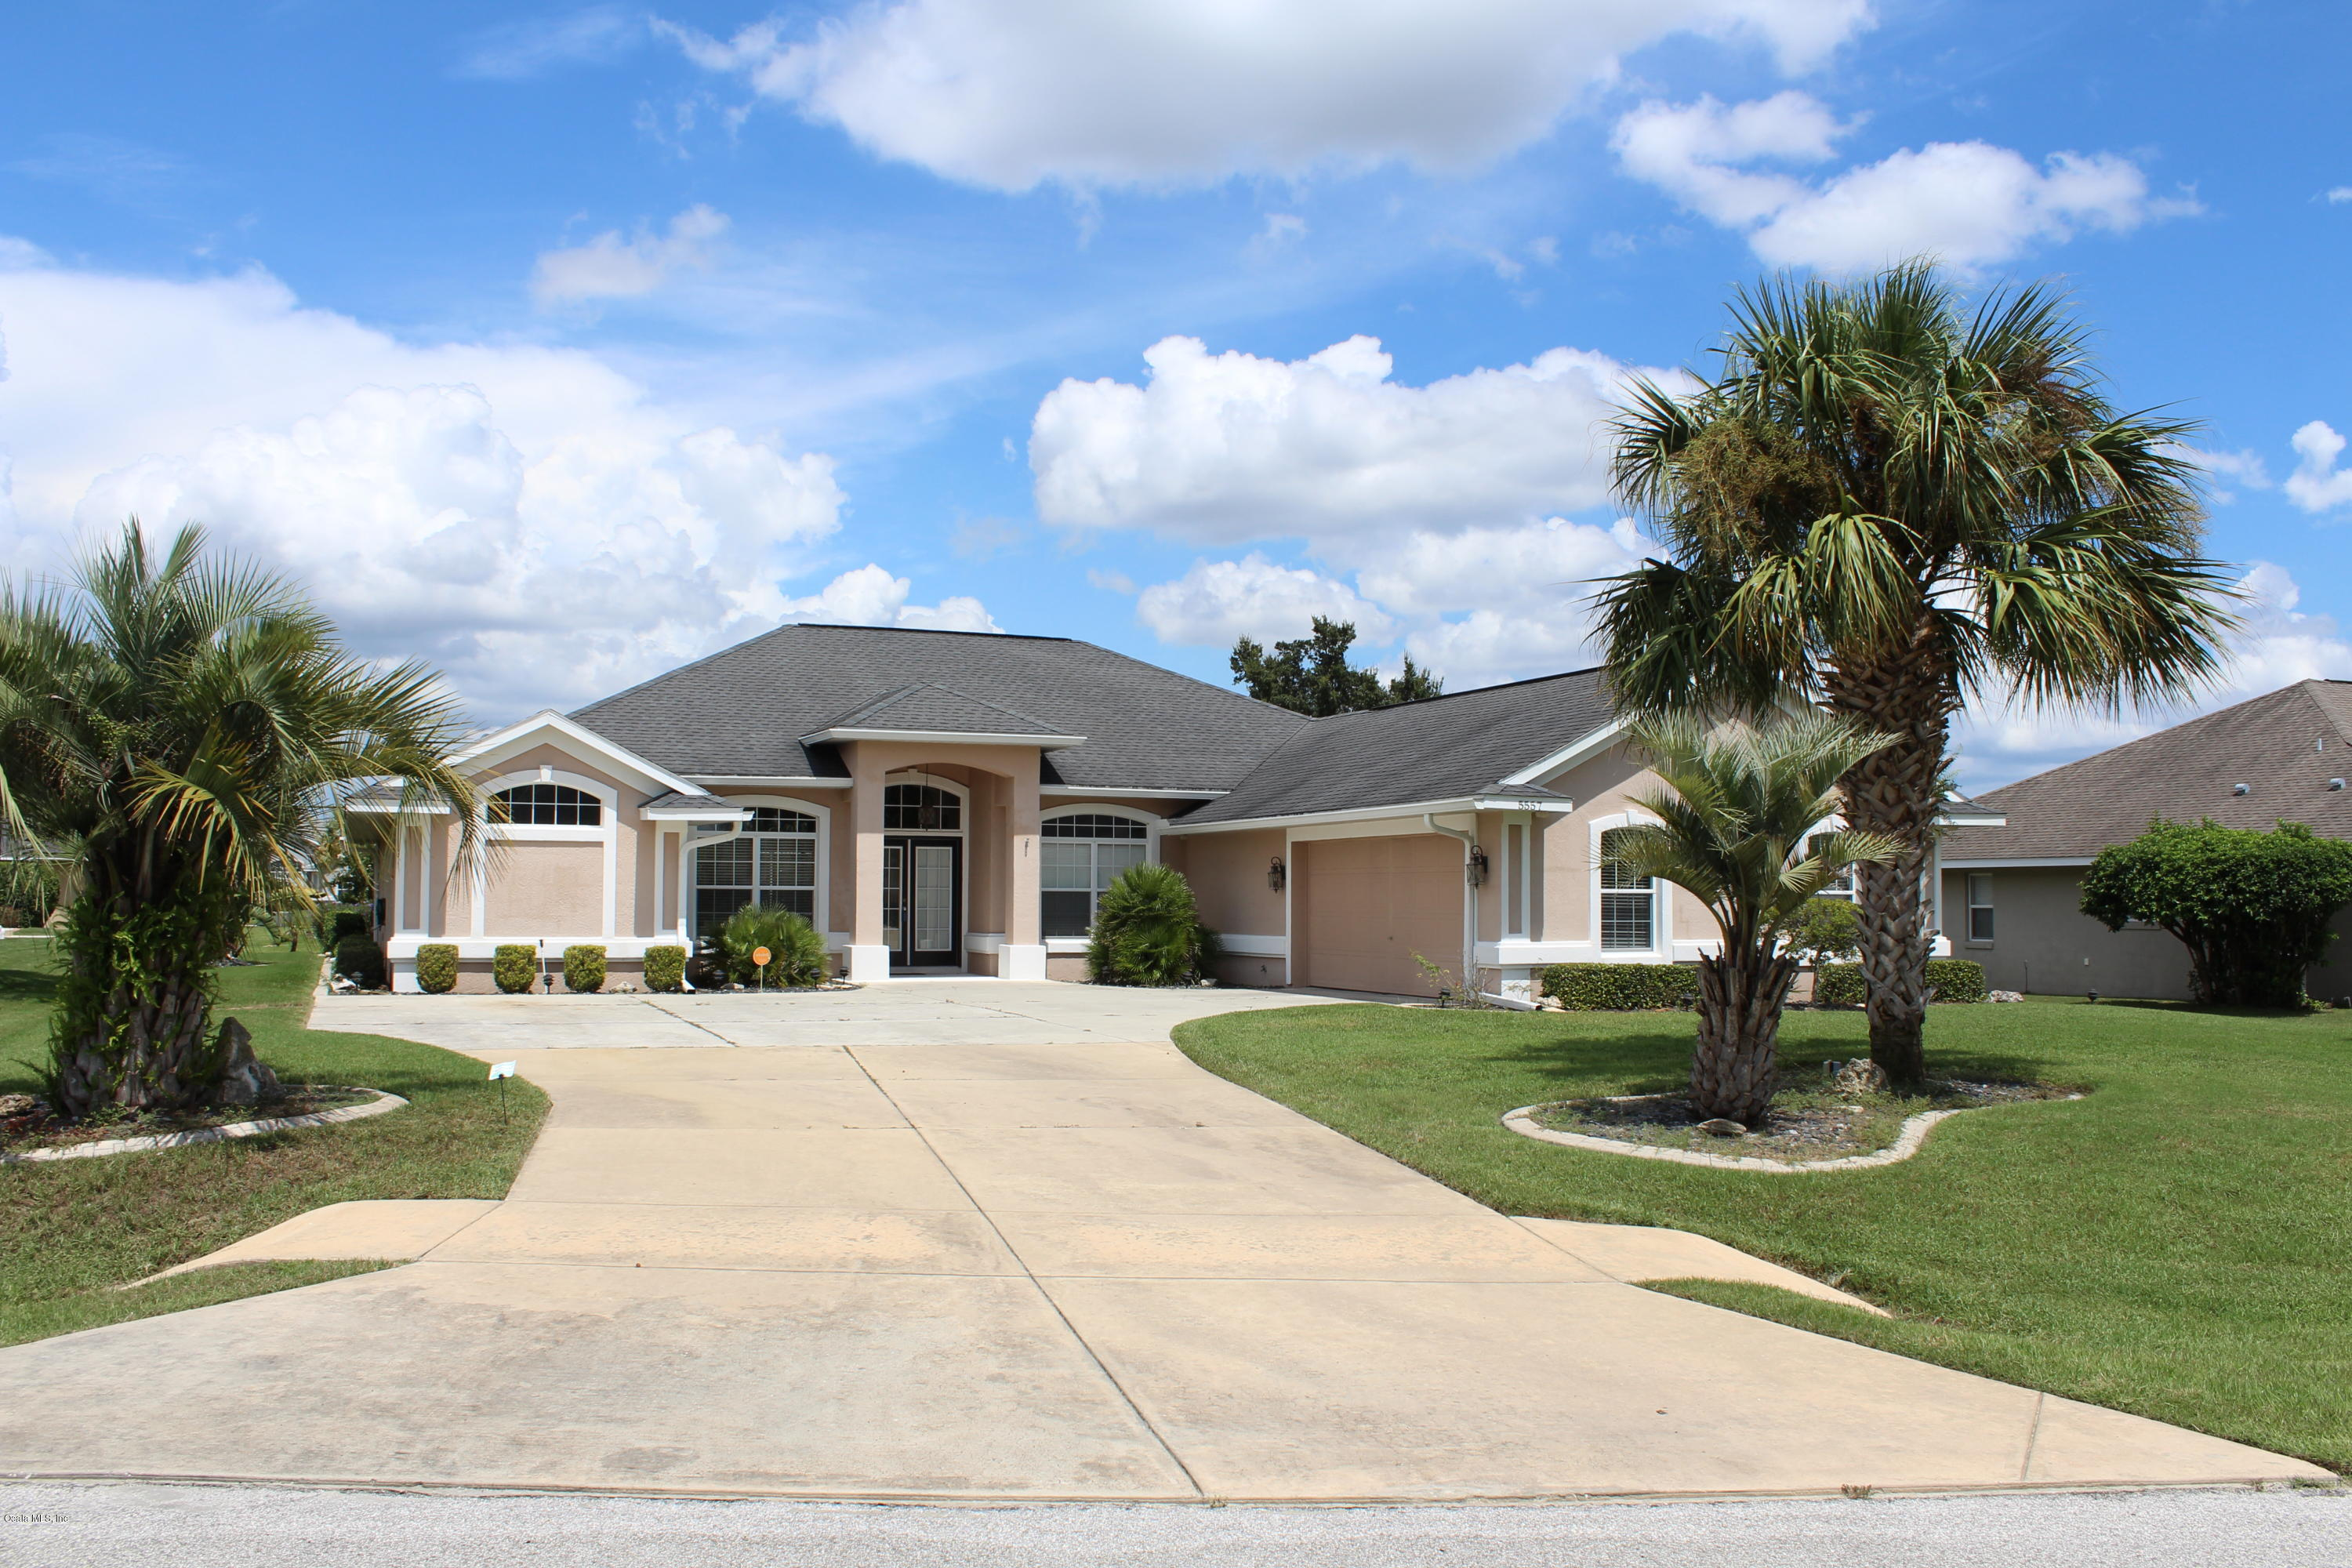 5557 SW 82ND PLACE, OCALA, FL 34476